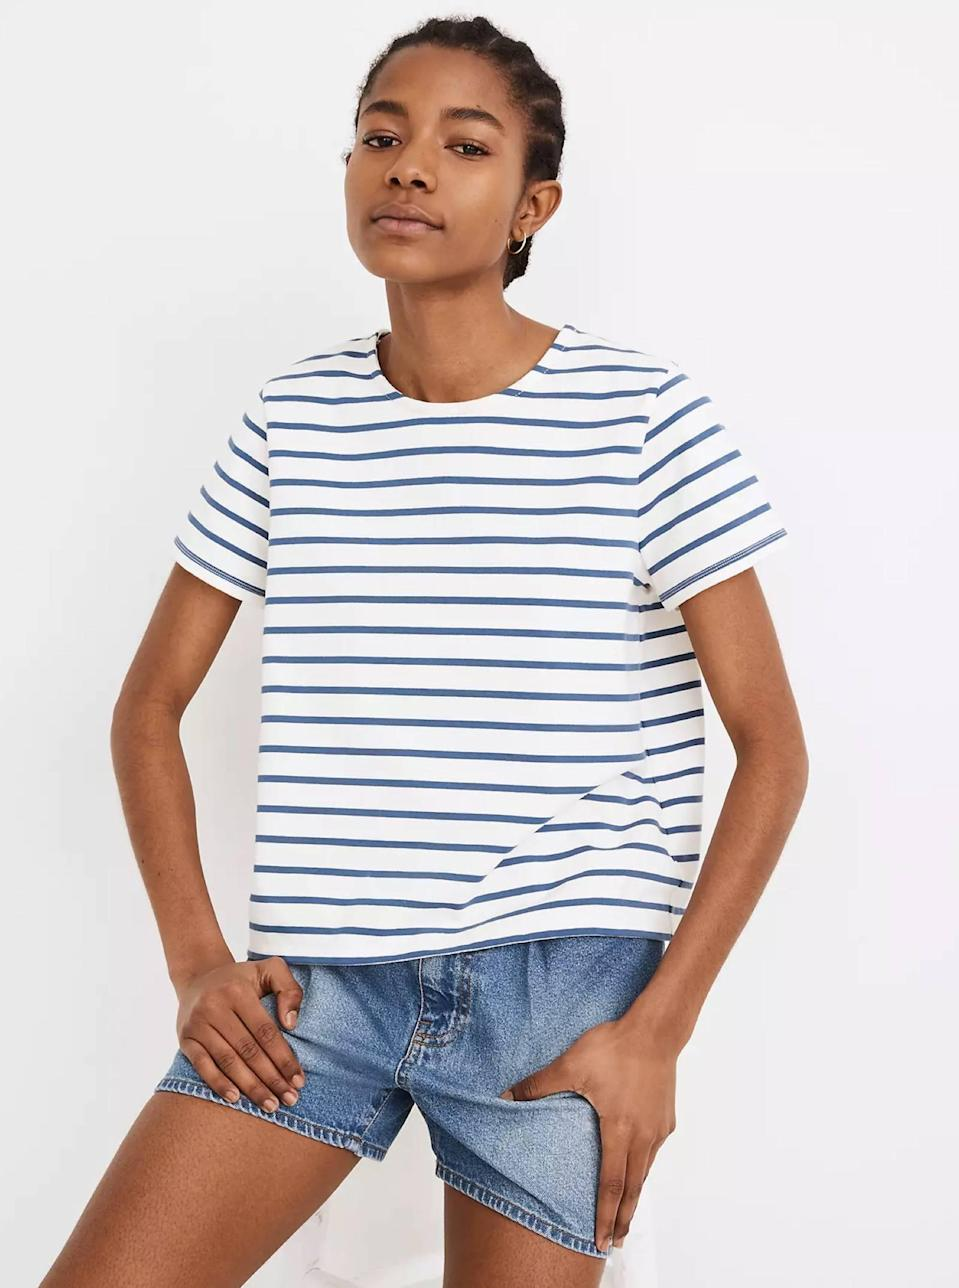 """If you don't already own a basic blue-and-white striped tee, now is your moment. Throw this boxy number over a pair of <a href=""""https://www.glamour.com/gallery/best-high-waisted-jeans?mbid=synd_yahoo_rss"""" rel=""""nofollow noopener"""" target=""""_blank"""" data-ylk=""""slk:high-waist jeans"""" class=""""link rapid-noclick-resp"""">high-waist jeans</a> and you've got yourself a perfect outfit. $39.5, Madewell. <a href=""""https://www.madewell.com/luxe-boxy-crop-tee-in-atmore-stripe-MB177.html?"""" rel=""""nofollow noopener"""" target=""""_blank"""" data-ylk=""""slk:Get it now!"""" class=""""link rapid-noclick-resp"""">Get it now!</a>"""